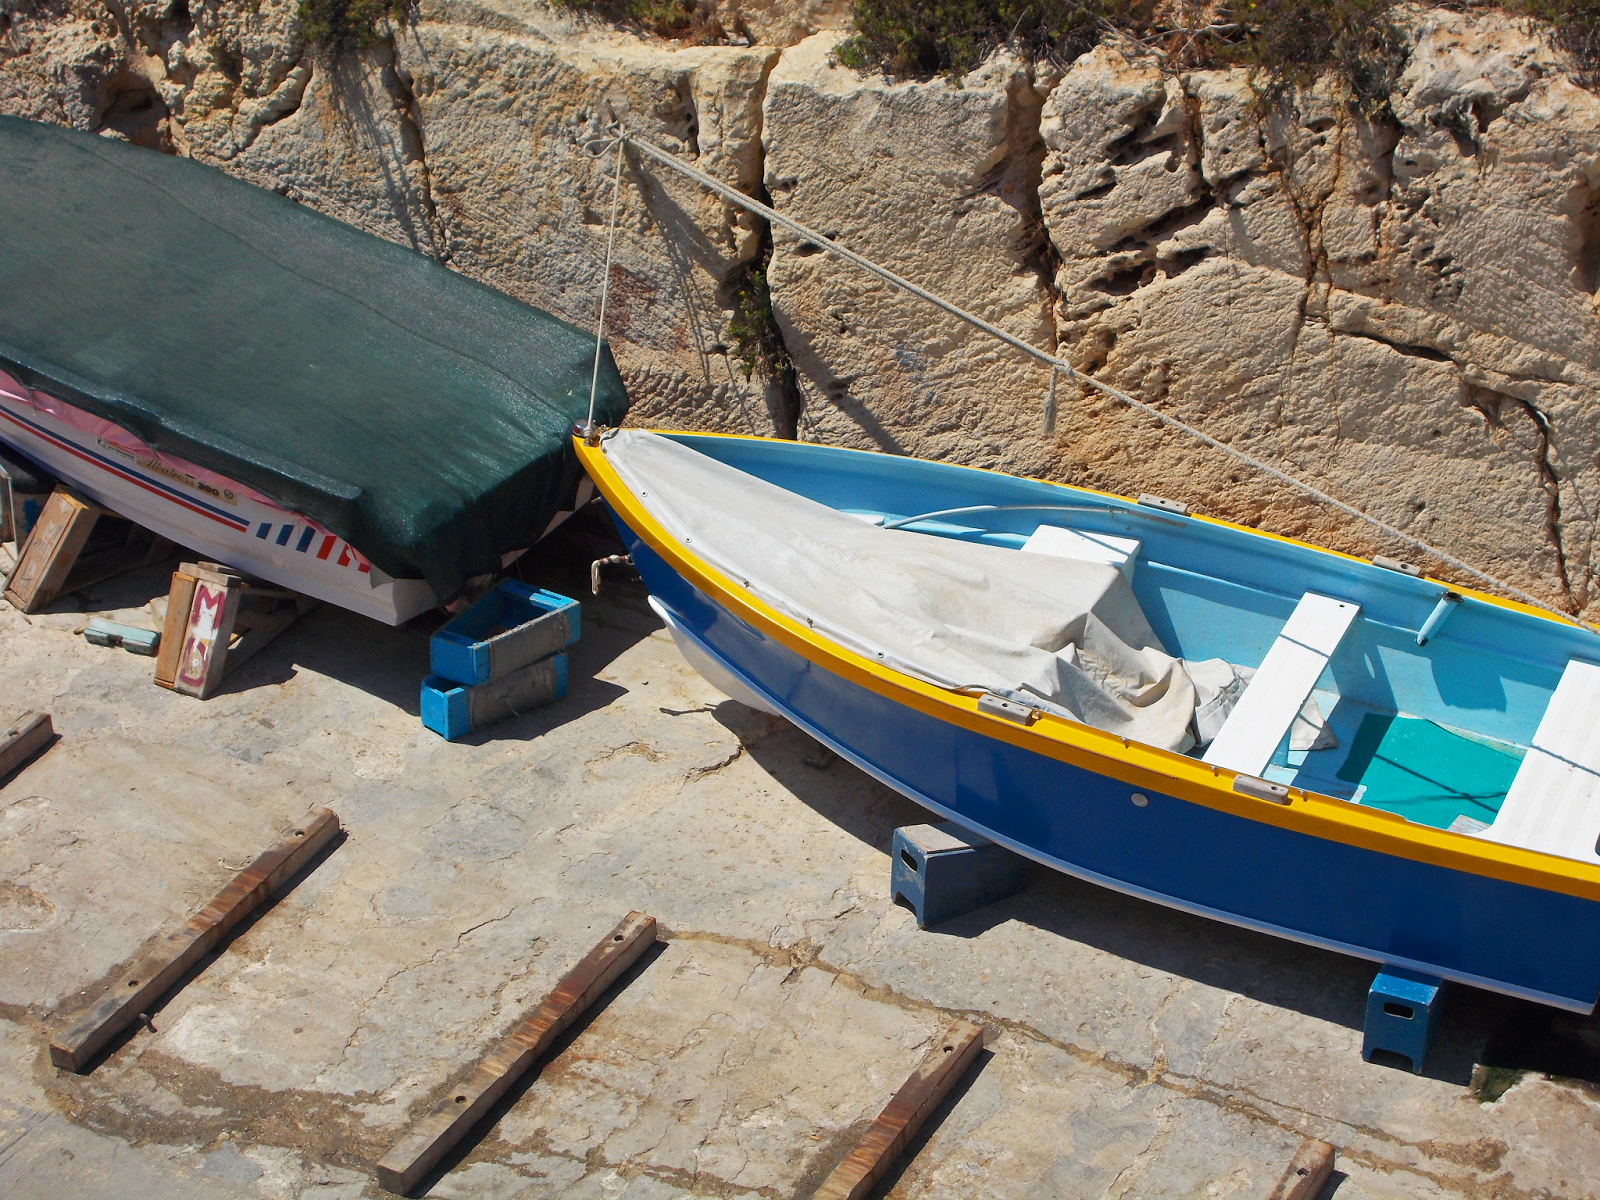 Rustic boats leading to the waters of the Blue Lagoon in Malta